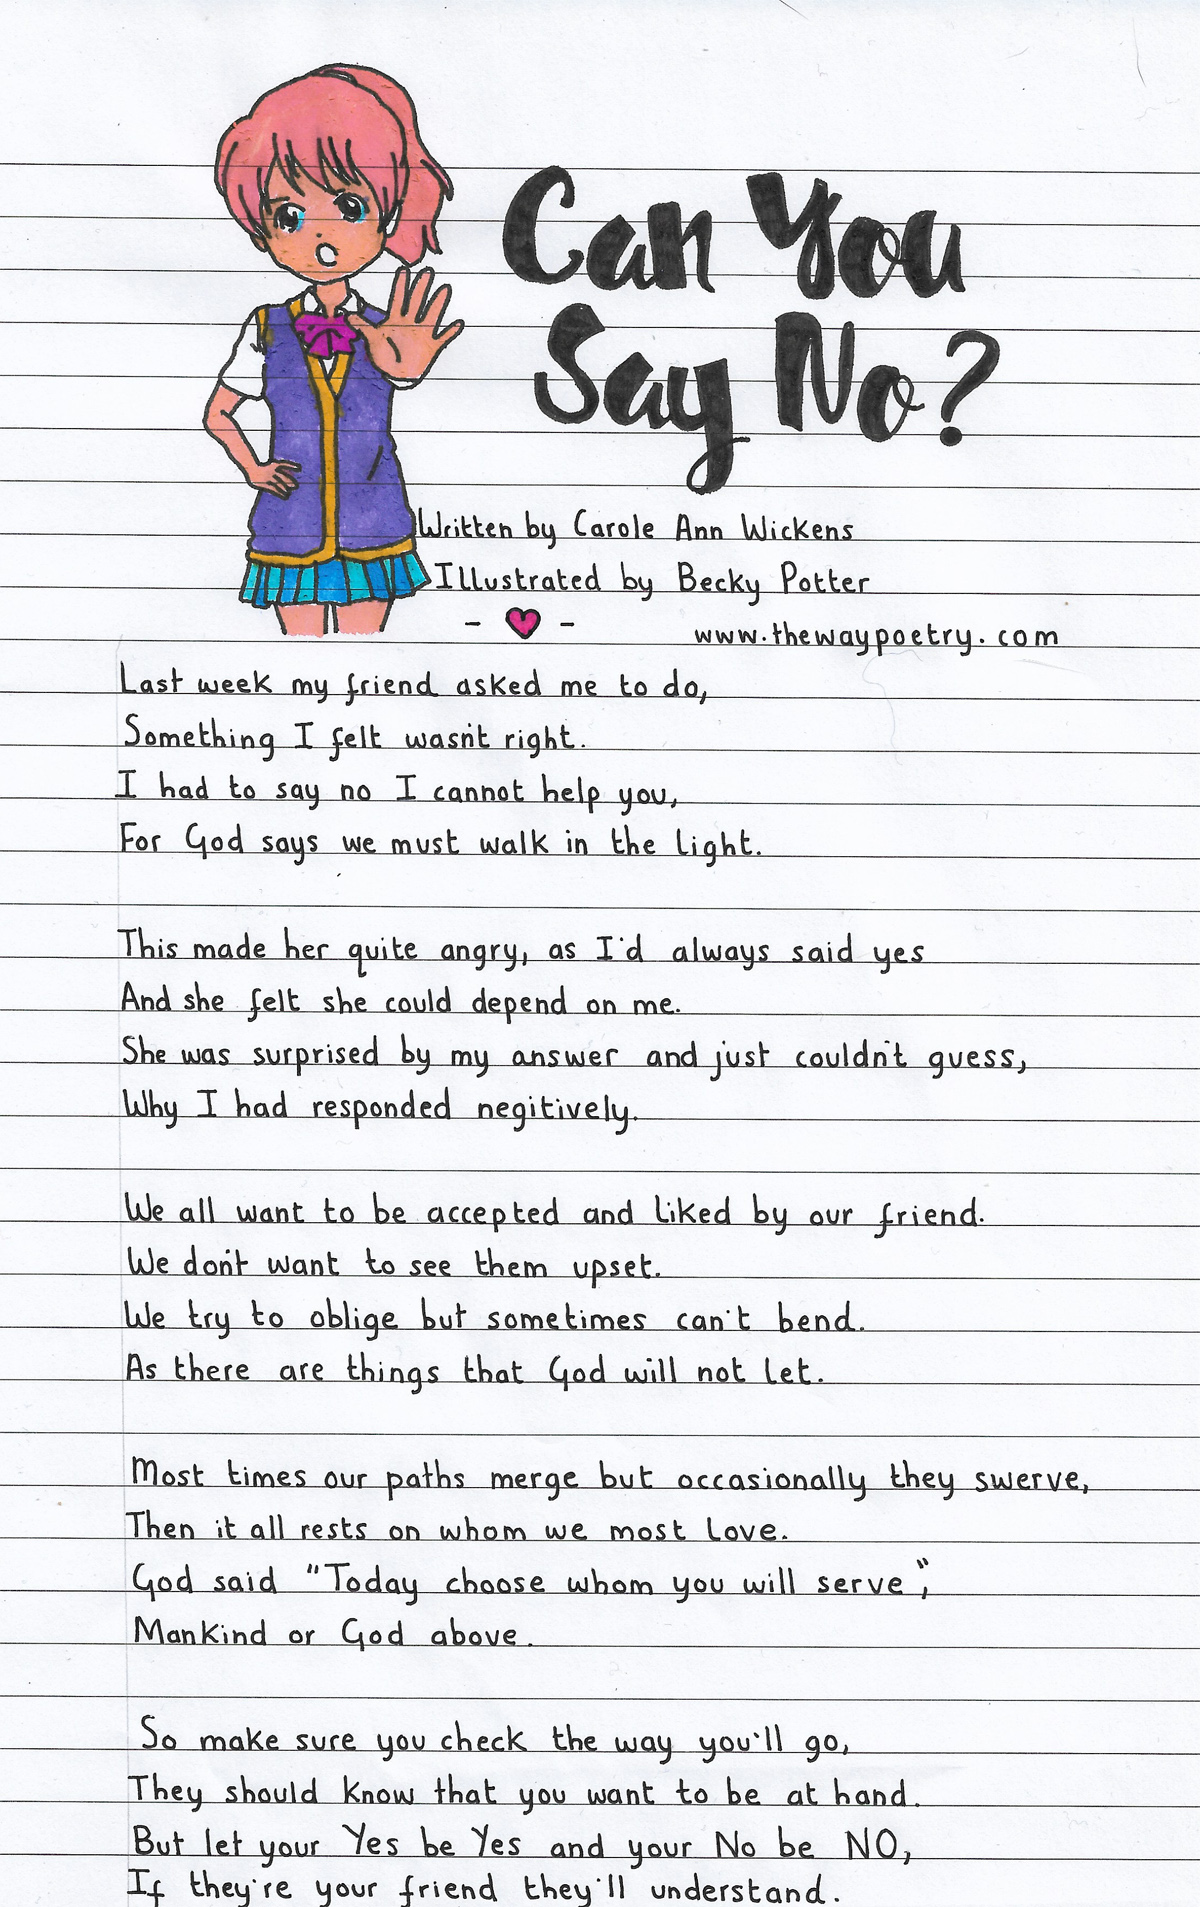 Can You Say No? by Carole Ann Wickens